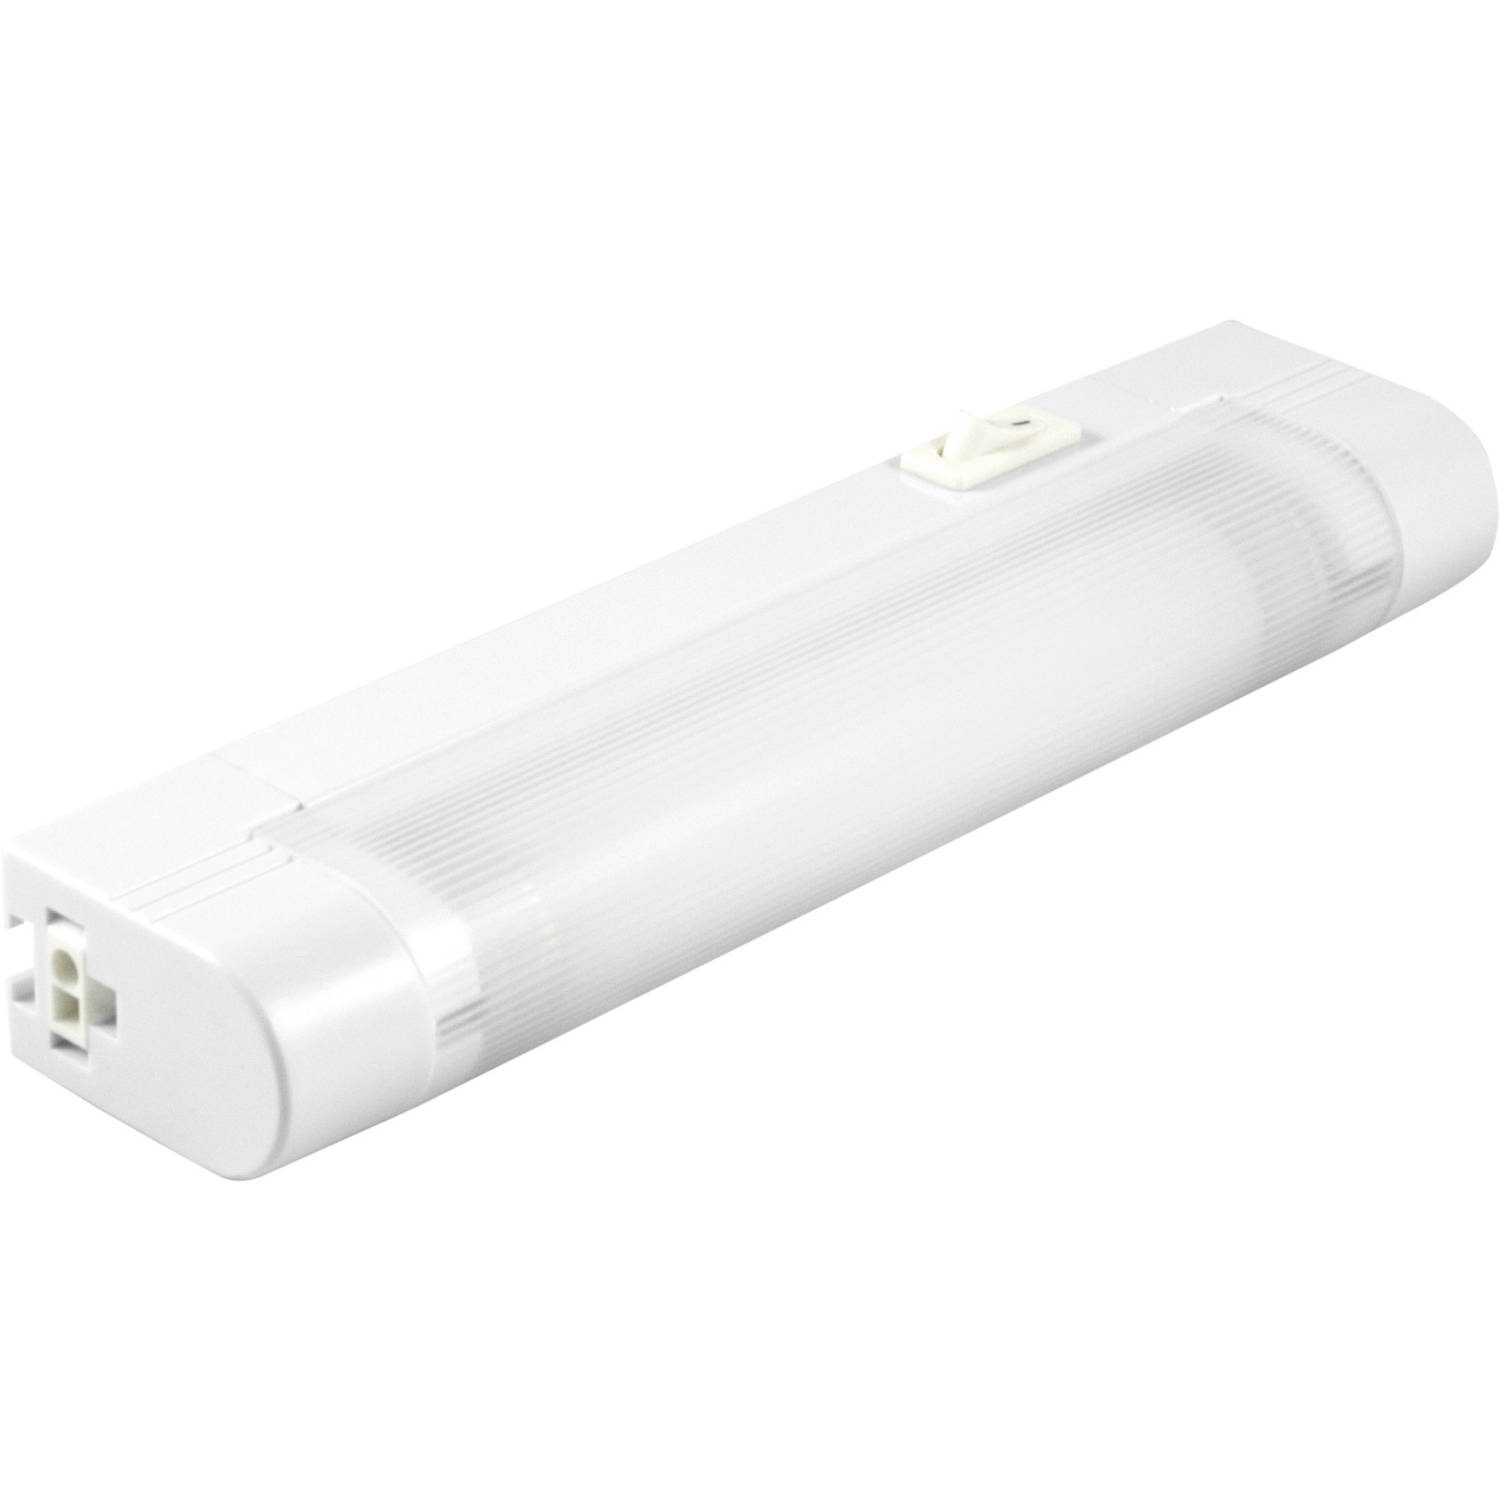 ge slim line 8in fluorescent plug in linkable light fixture 10167 rh walmart com under cabinet fluorescent lighting covers under cabinet fluorescent light fixture 18 white